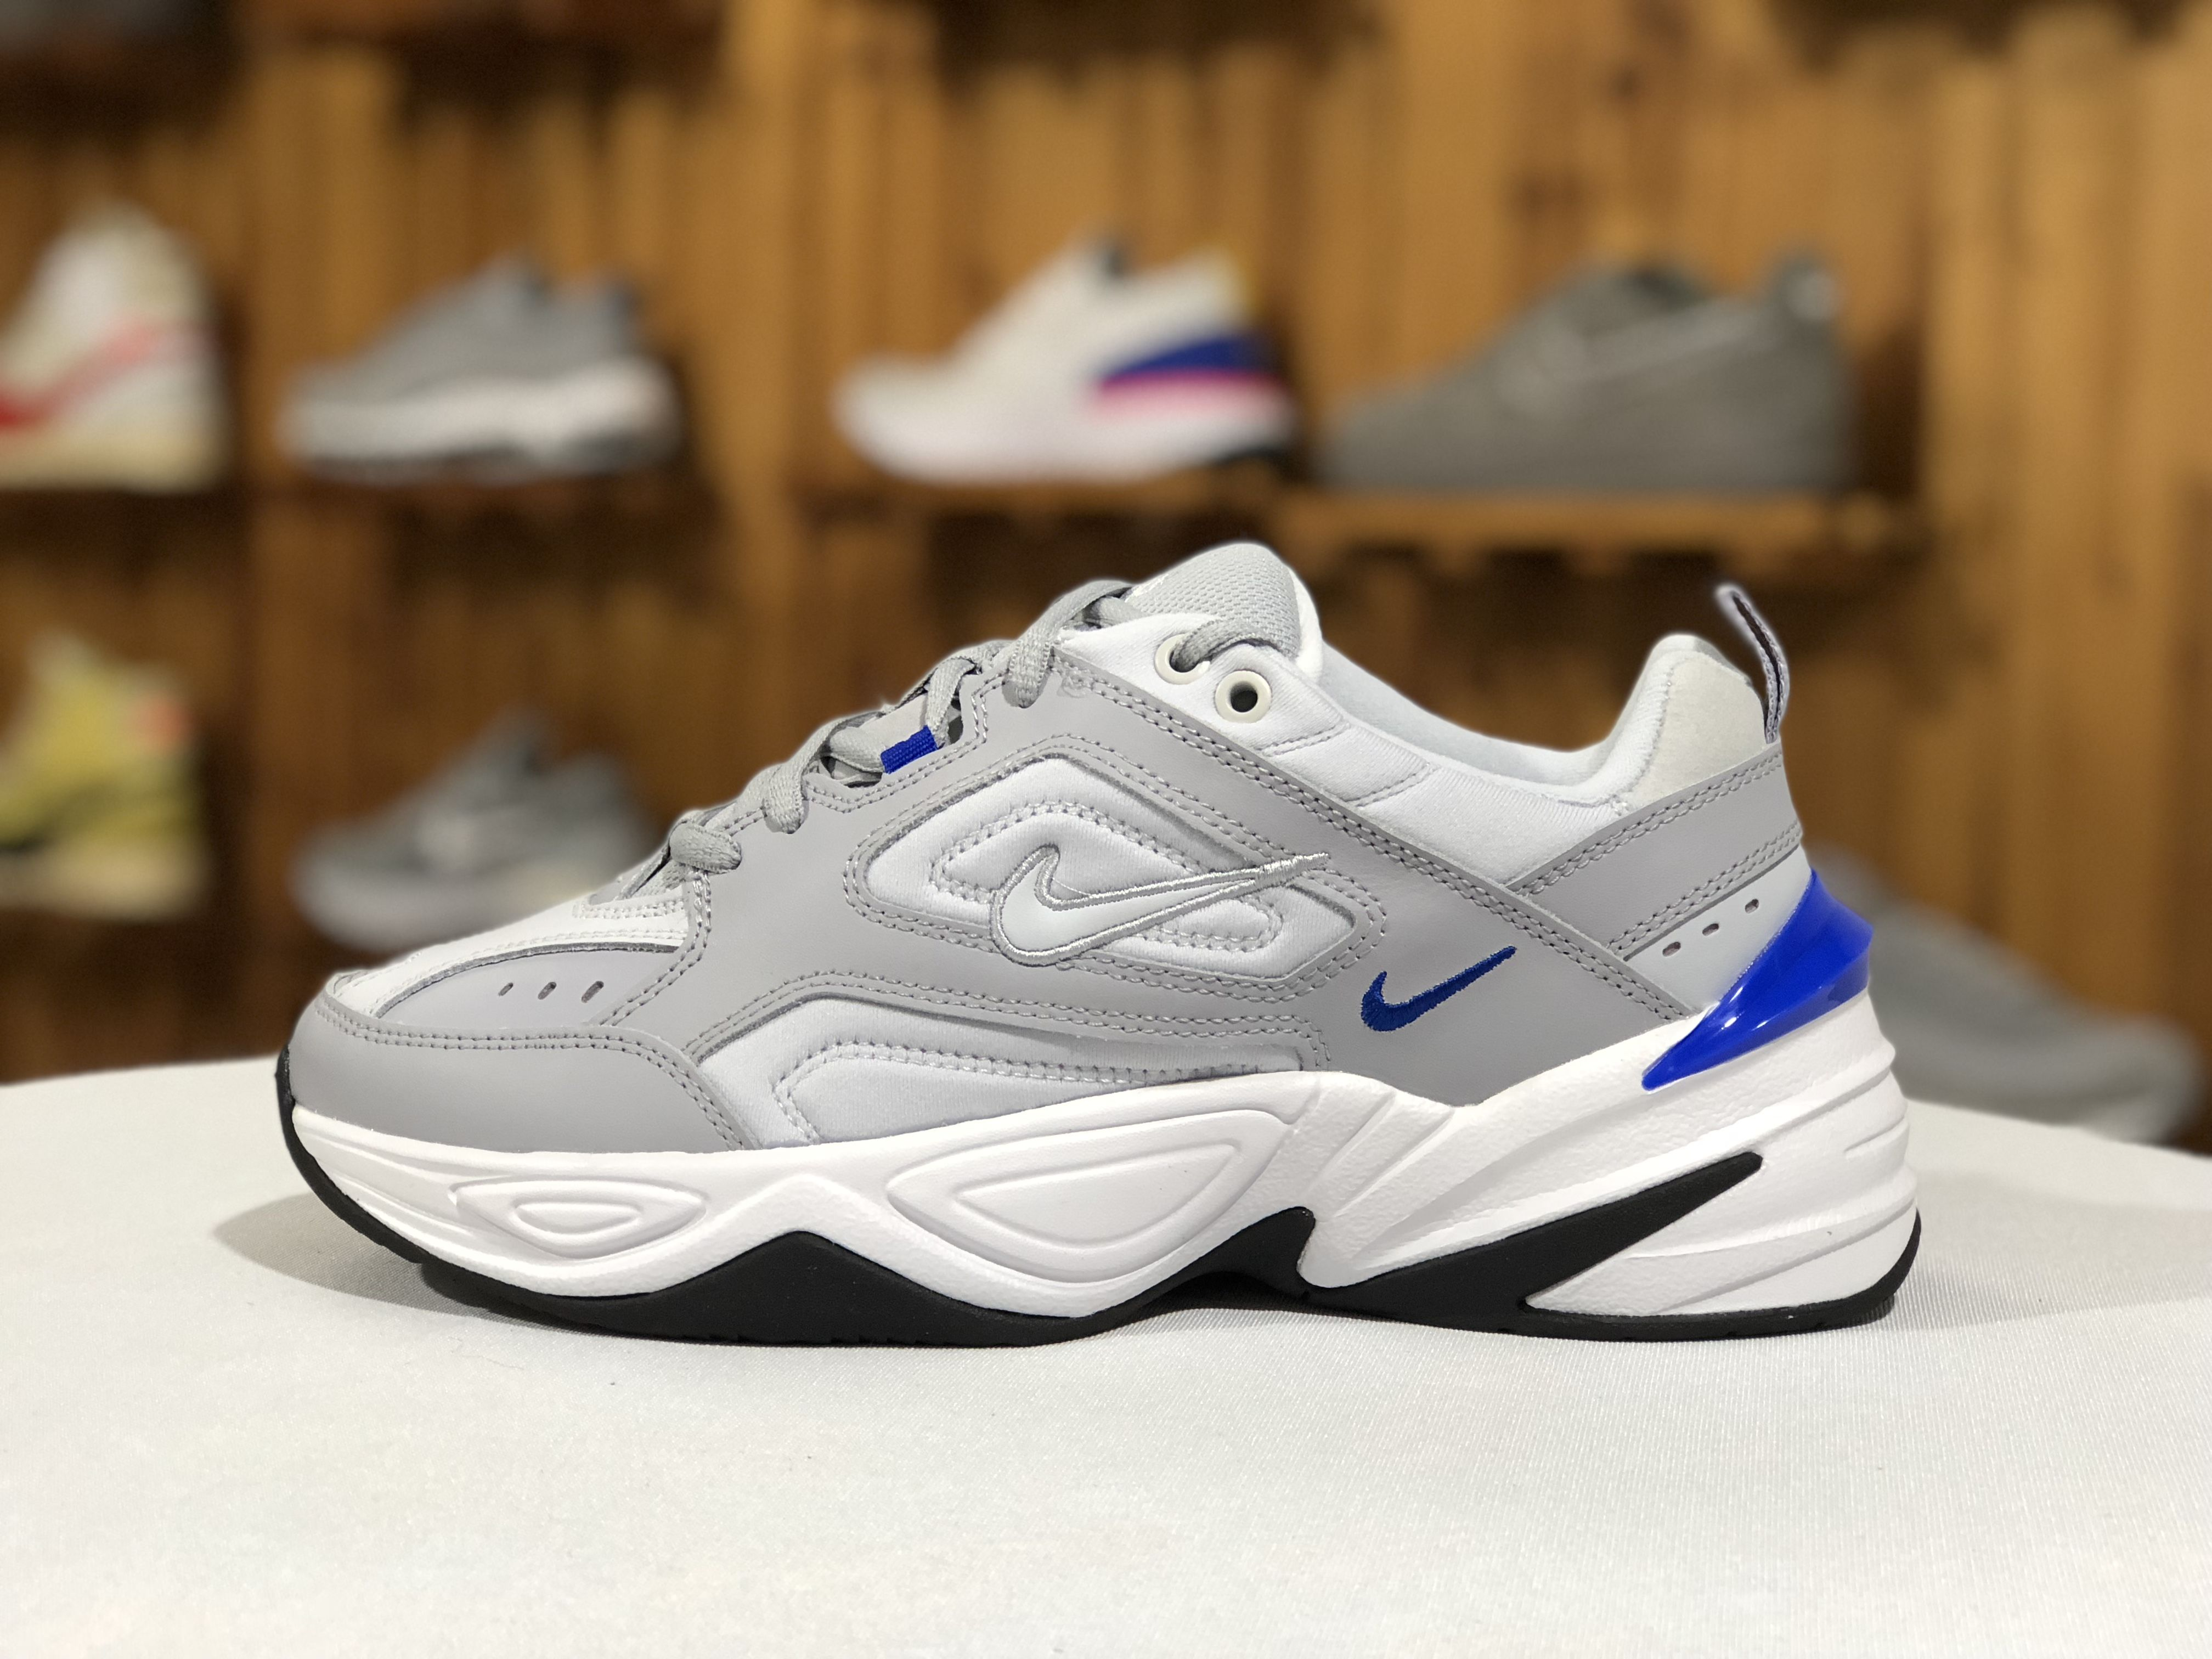 84a9928597cb0 2019 Nike M2K Tekno Wolf Grey Racer Blue Men Chunky Daddy Shoes ...